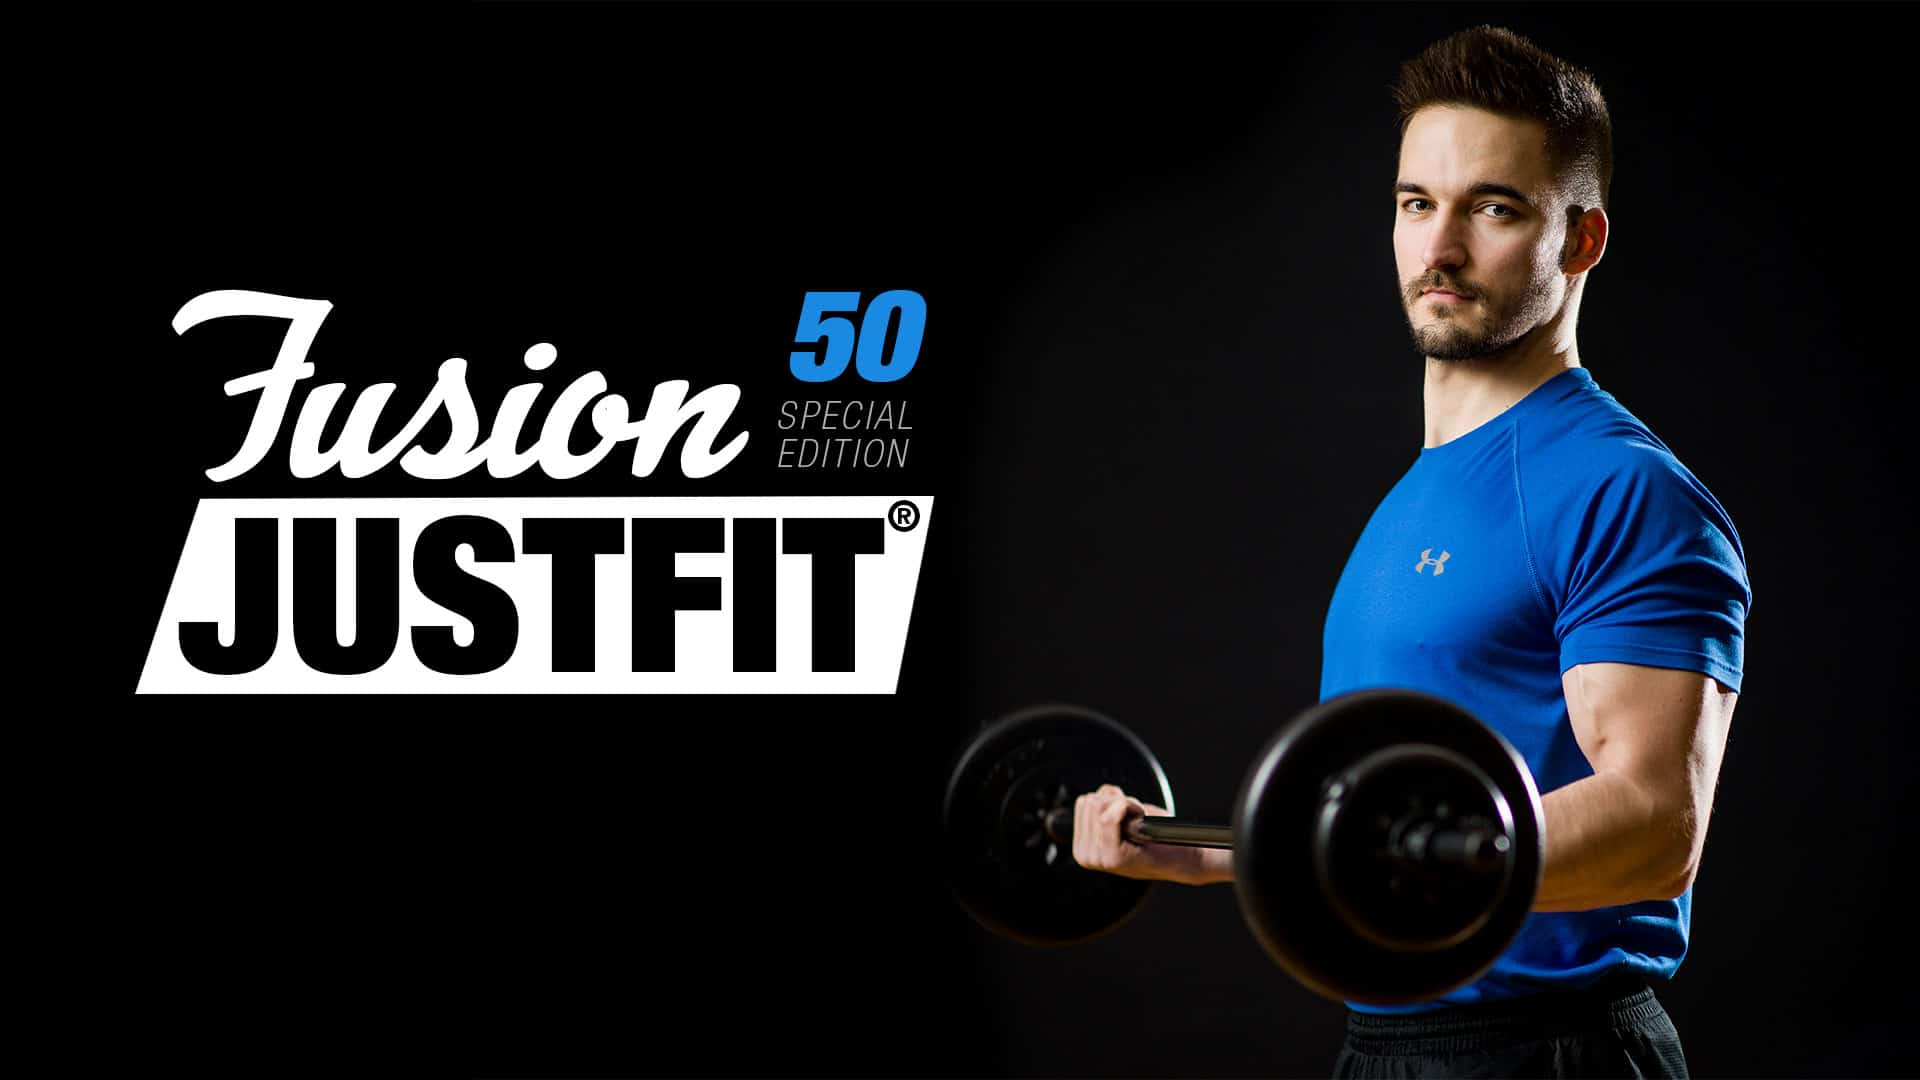 Fusion Justfit 50